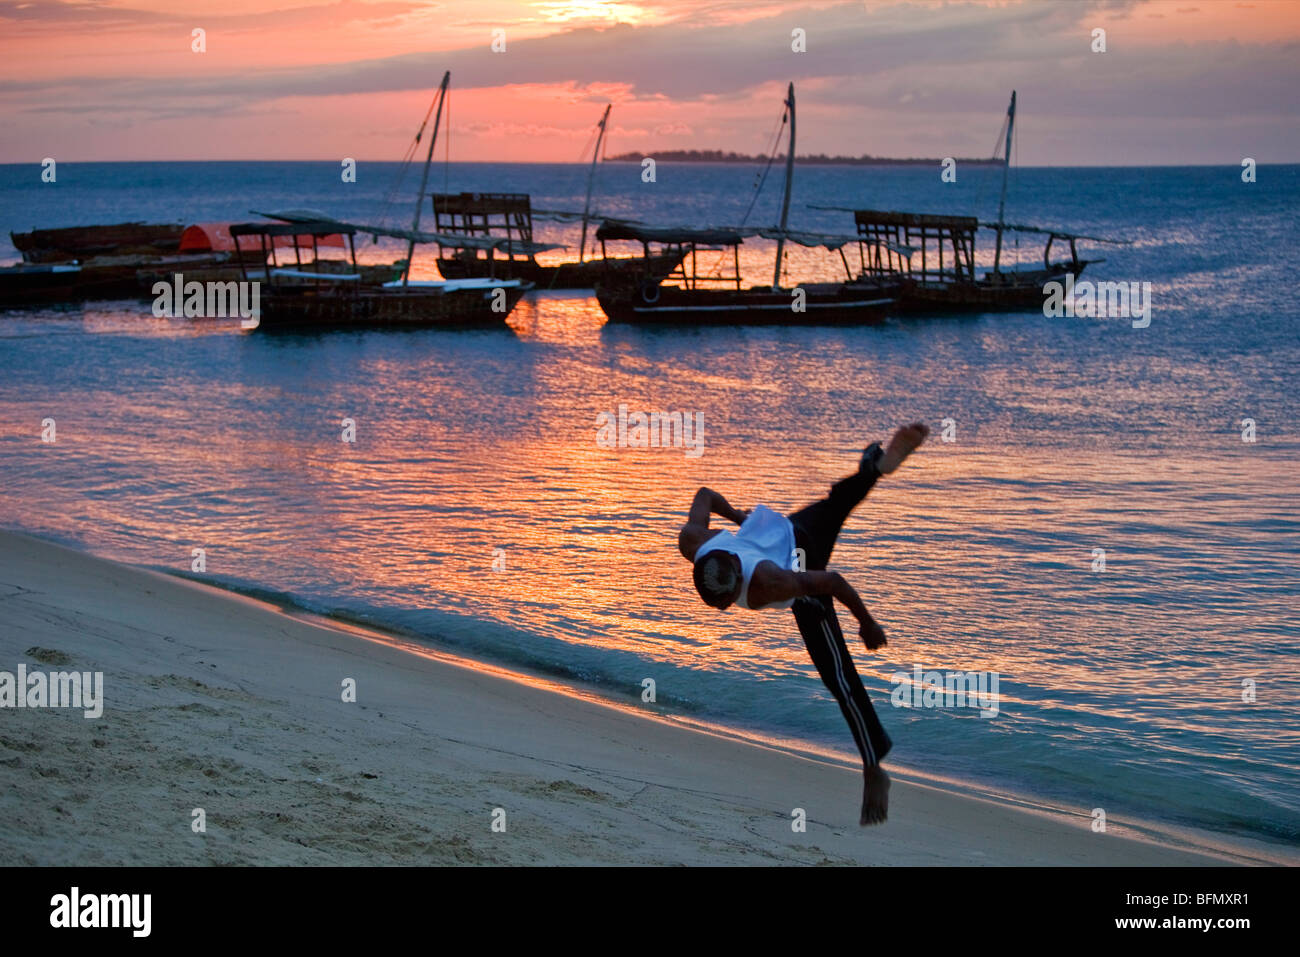 Tanzania, Zanzibar. At sunset, an acrobat practices somersaulting on the sandy beach west of Stone Town. Stock Photo